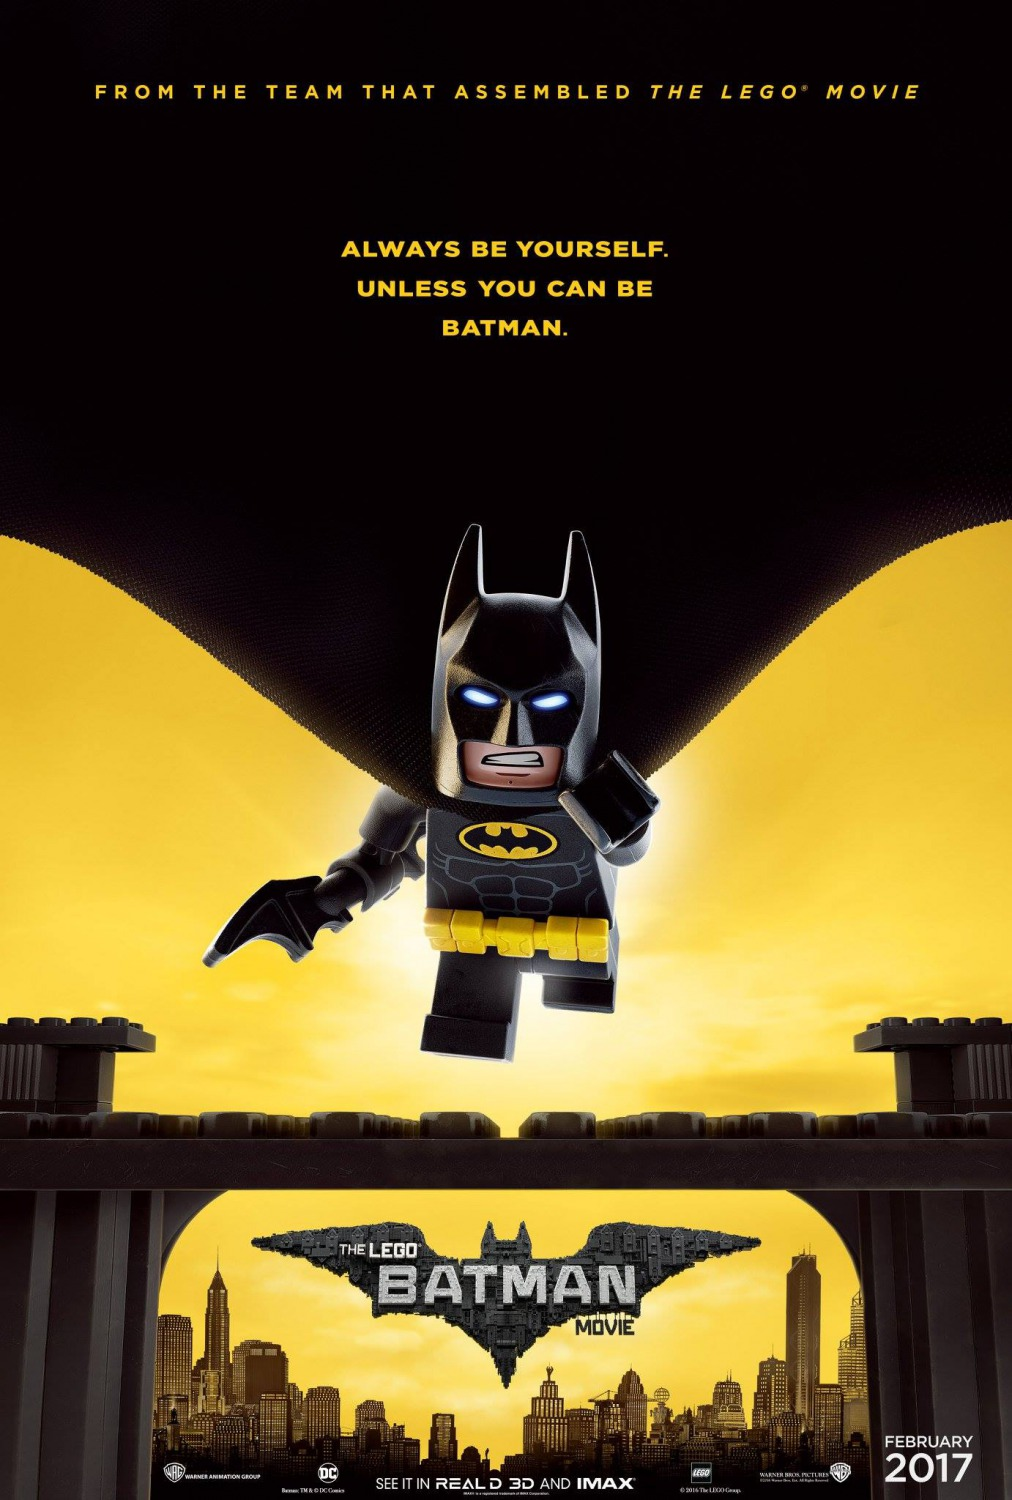 LEGO Batman Movie, The (2017) - AfterCredits